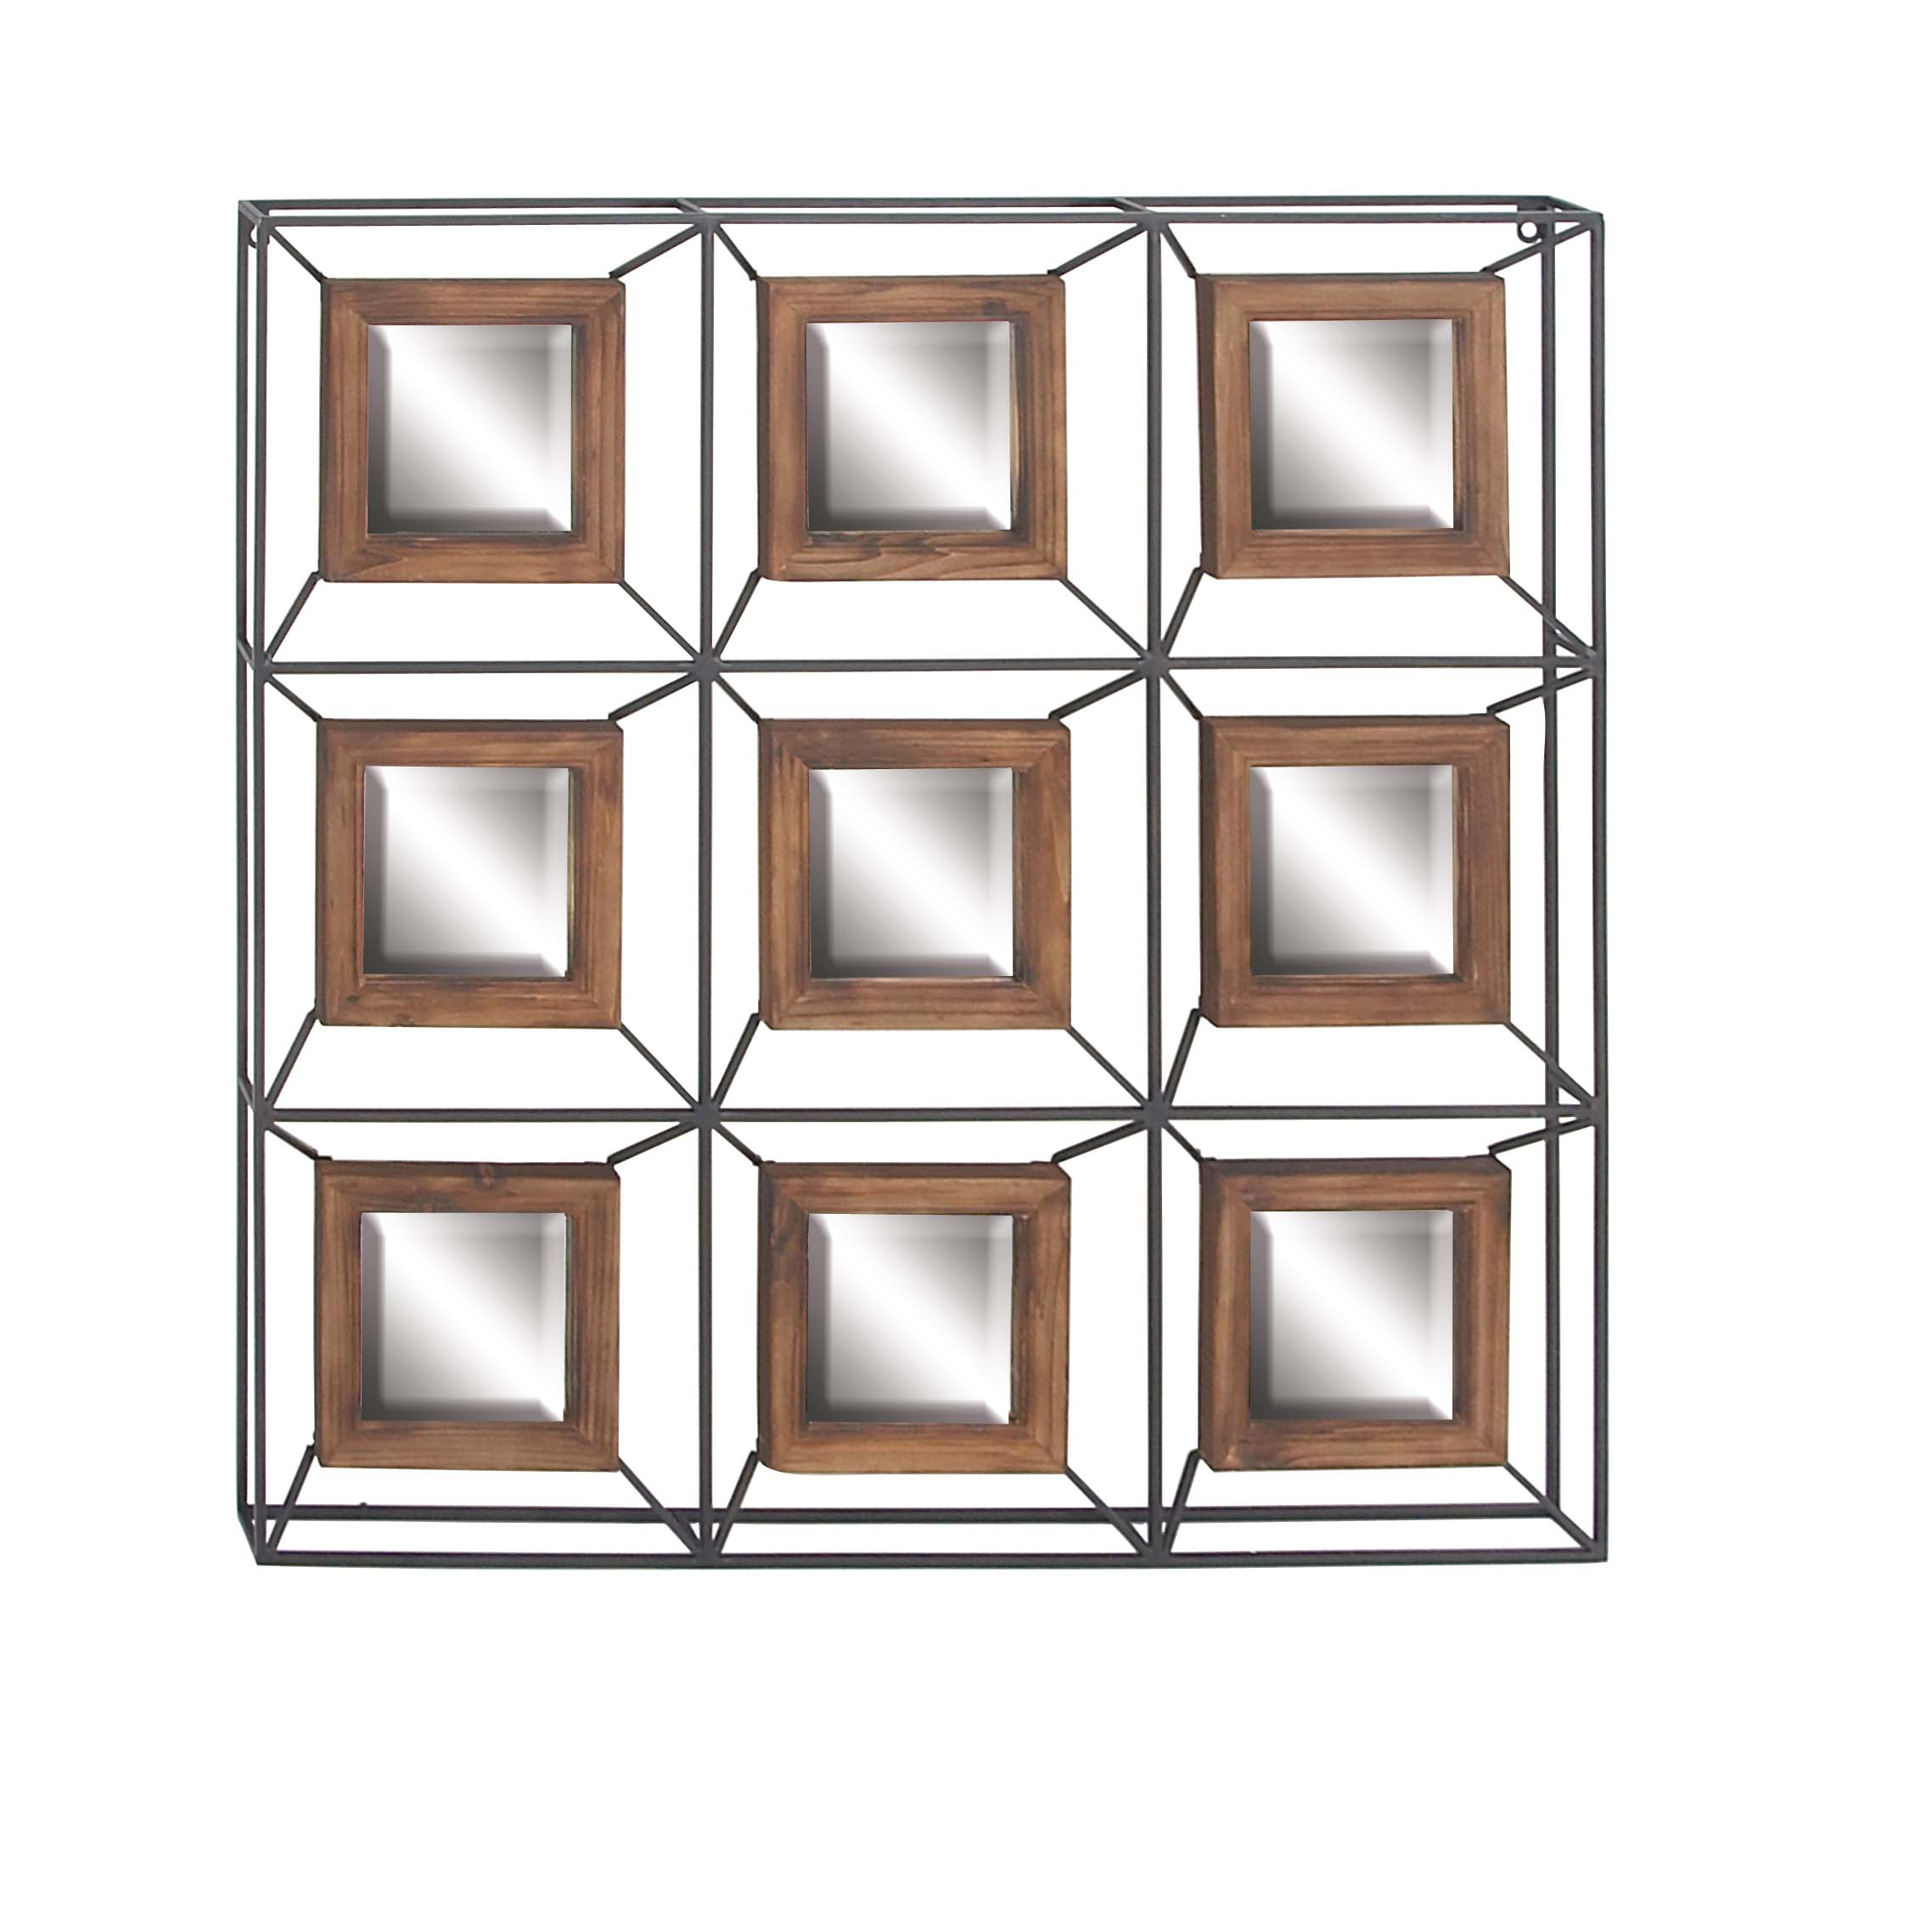 Decmode Contemporary Metal And Fir Wood Grid Wall Mirror, Gray With Traditional Square Glass Wall Mirrors (View 17 of 30)